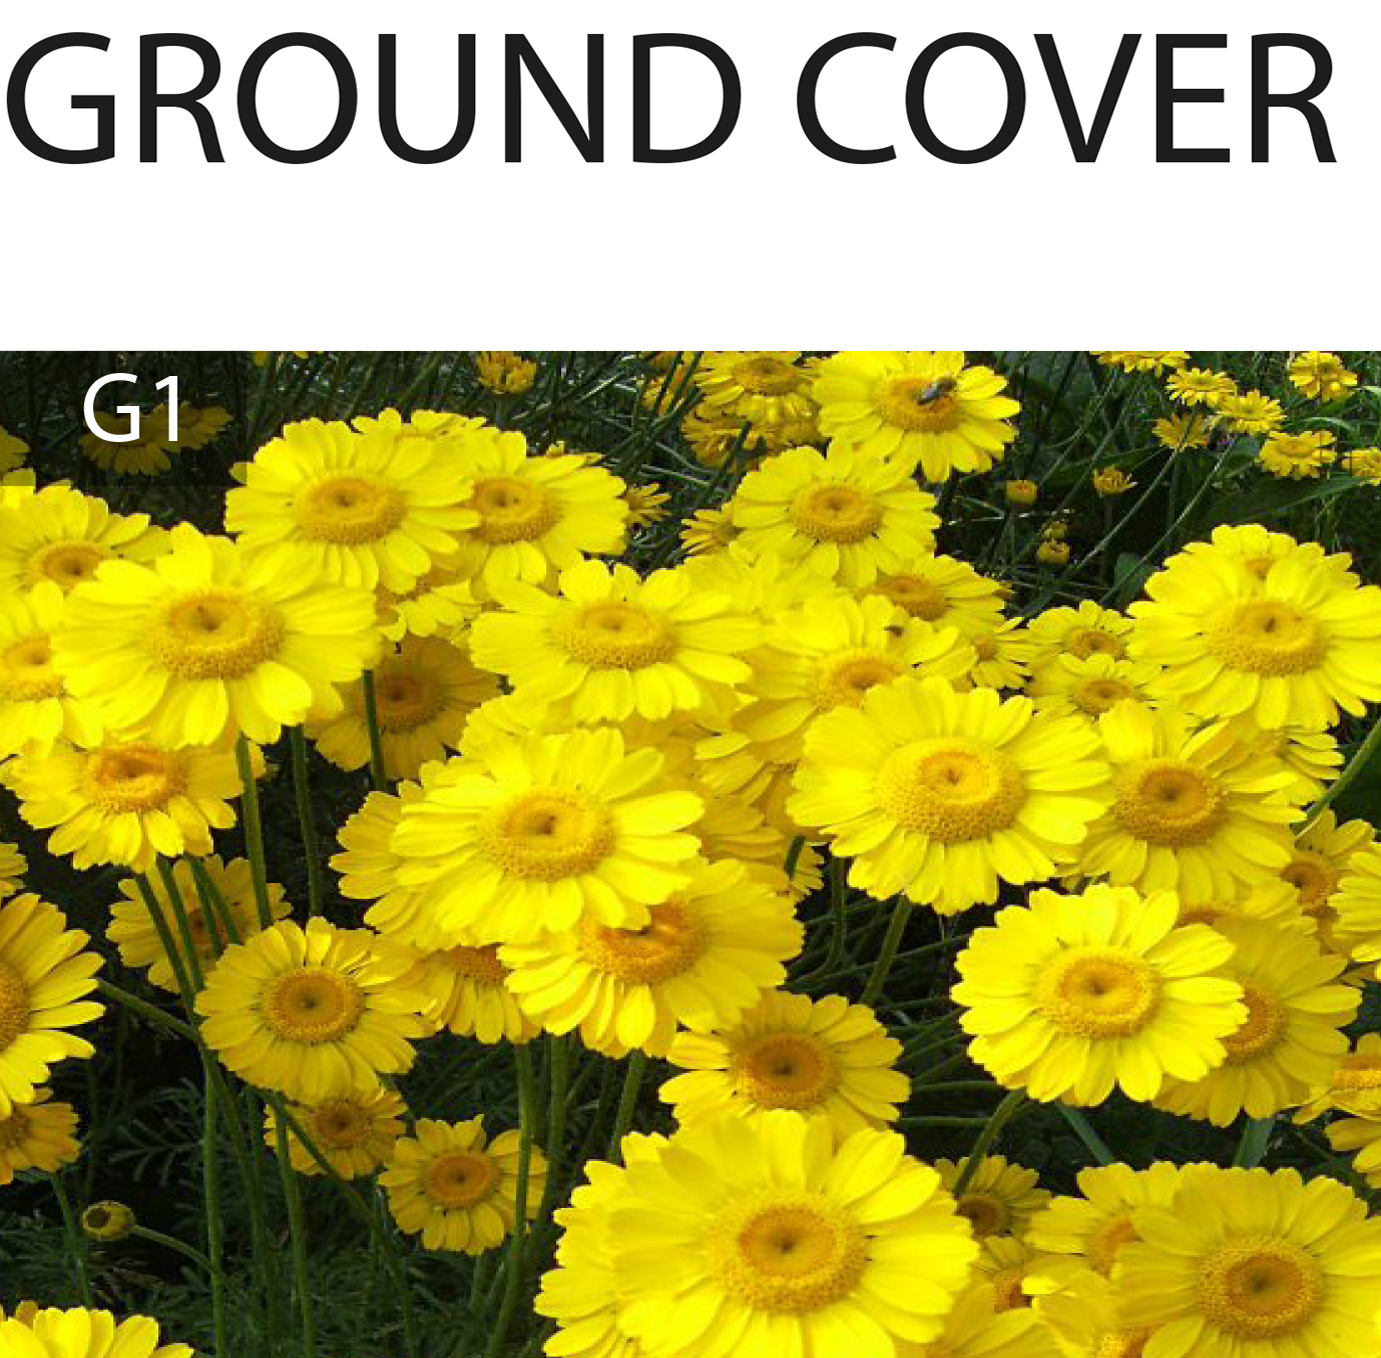 Ground cover options